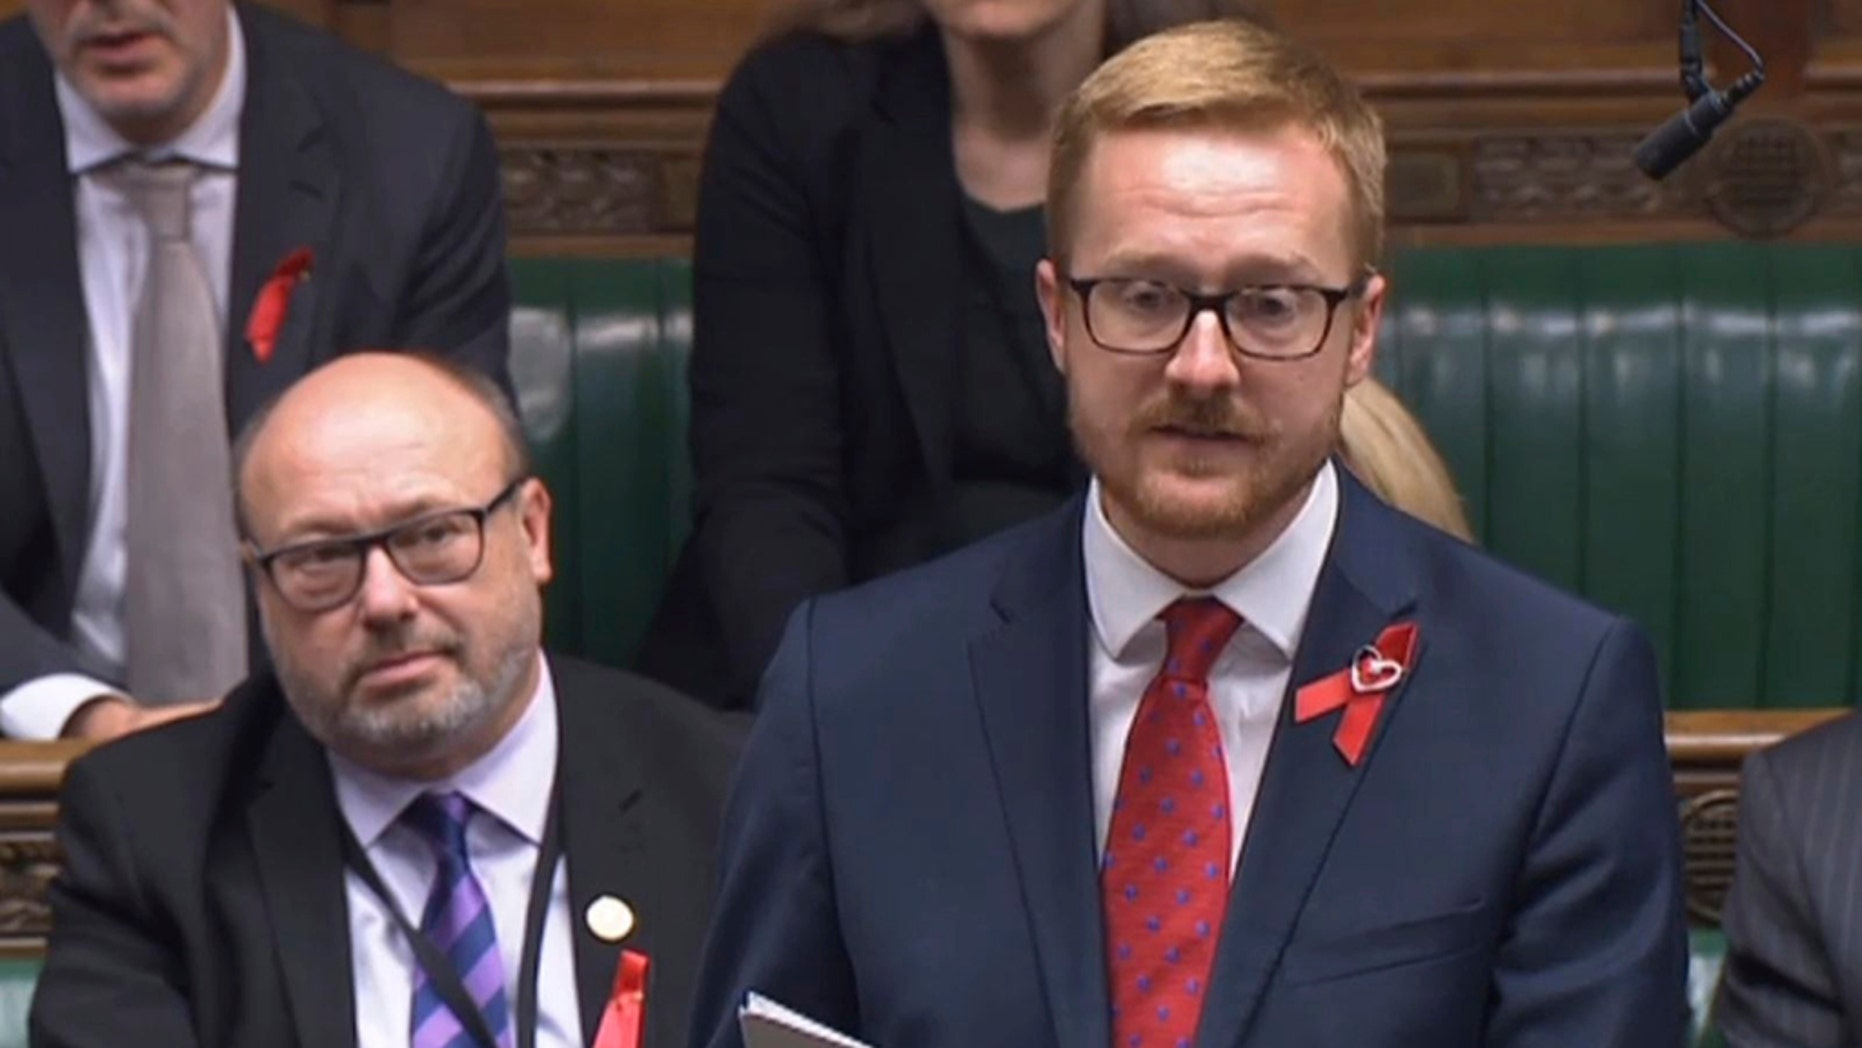 Lloyd Russell-Moyle, Labor MP for Brighton Kemptown, speaks in the House of Commons and talks about his positive HIV status.